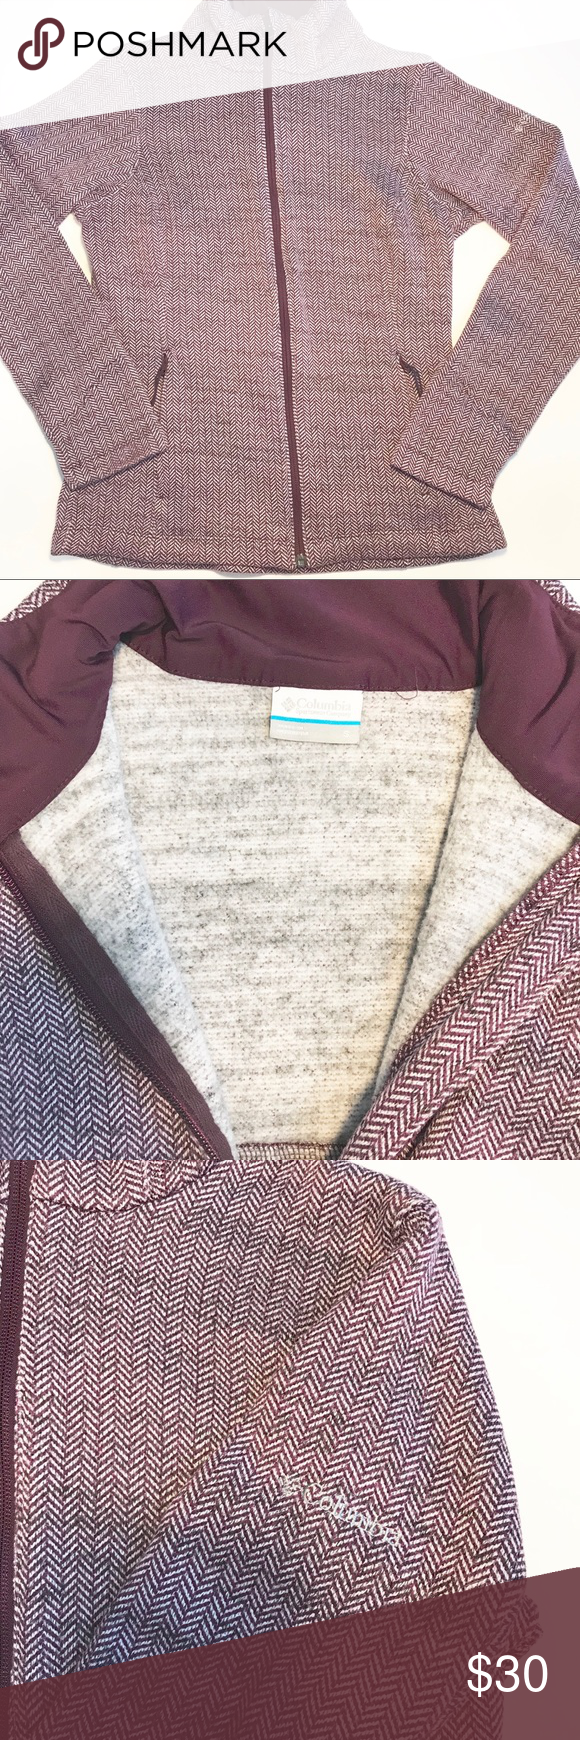 b920b5a2198 Columbia Full Zip-up Women s Jacket Size Small Great excellent condition  Warm and soft Not accepting trades at this time Offers always welcomed See  photo ...